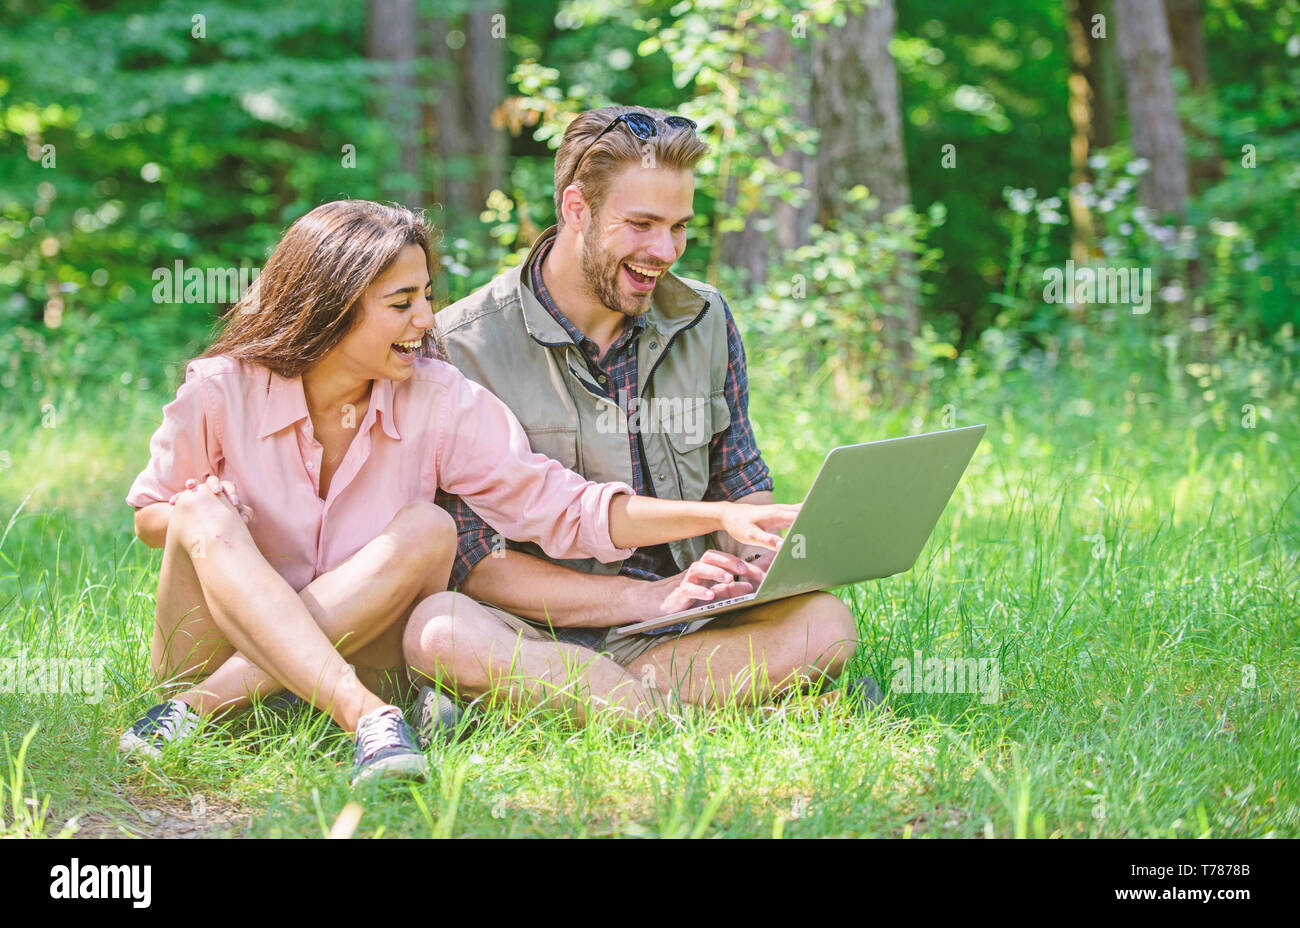 Modern technologies give opportunity to be online and work in any environment conditions. Man and girl looking at laptop screen. Freelance opportunity. Couple youth spend leisure outdoors with laptop. - Stock Image